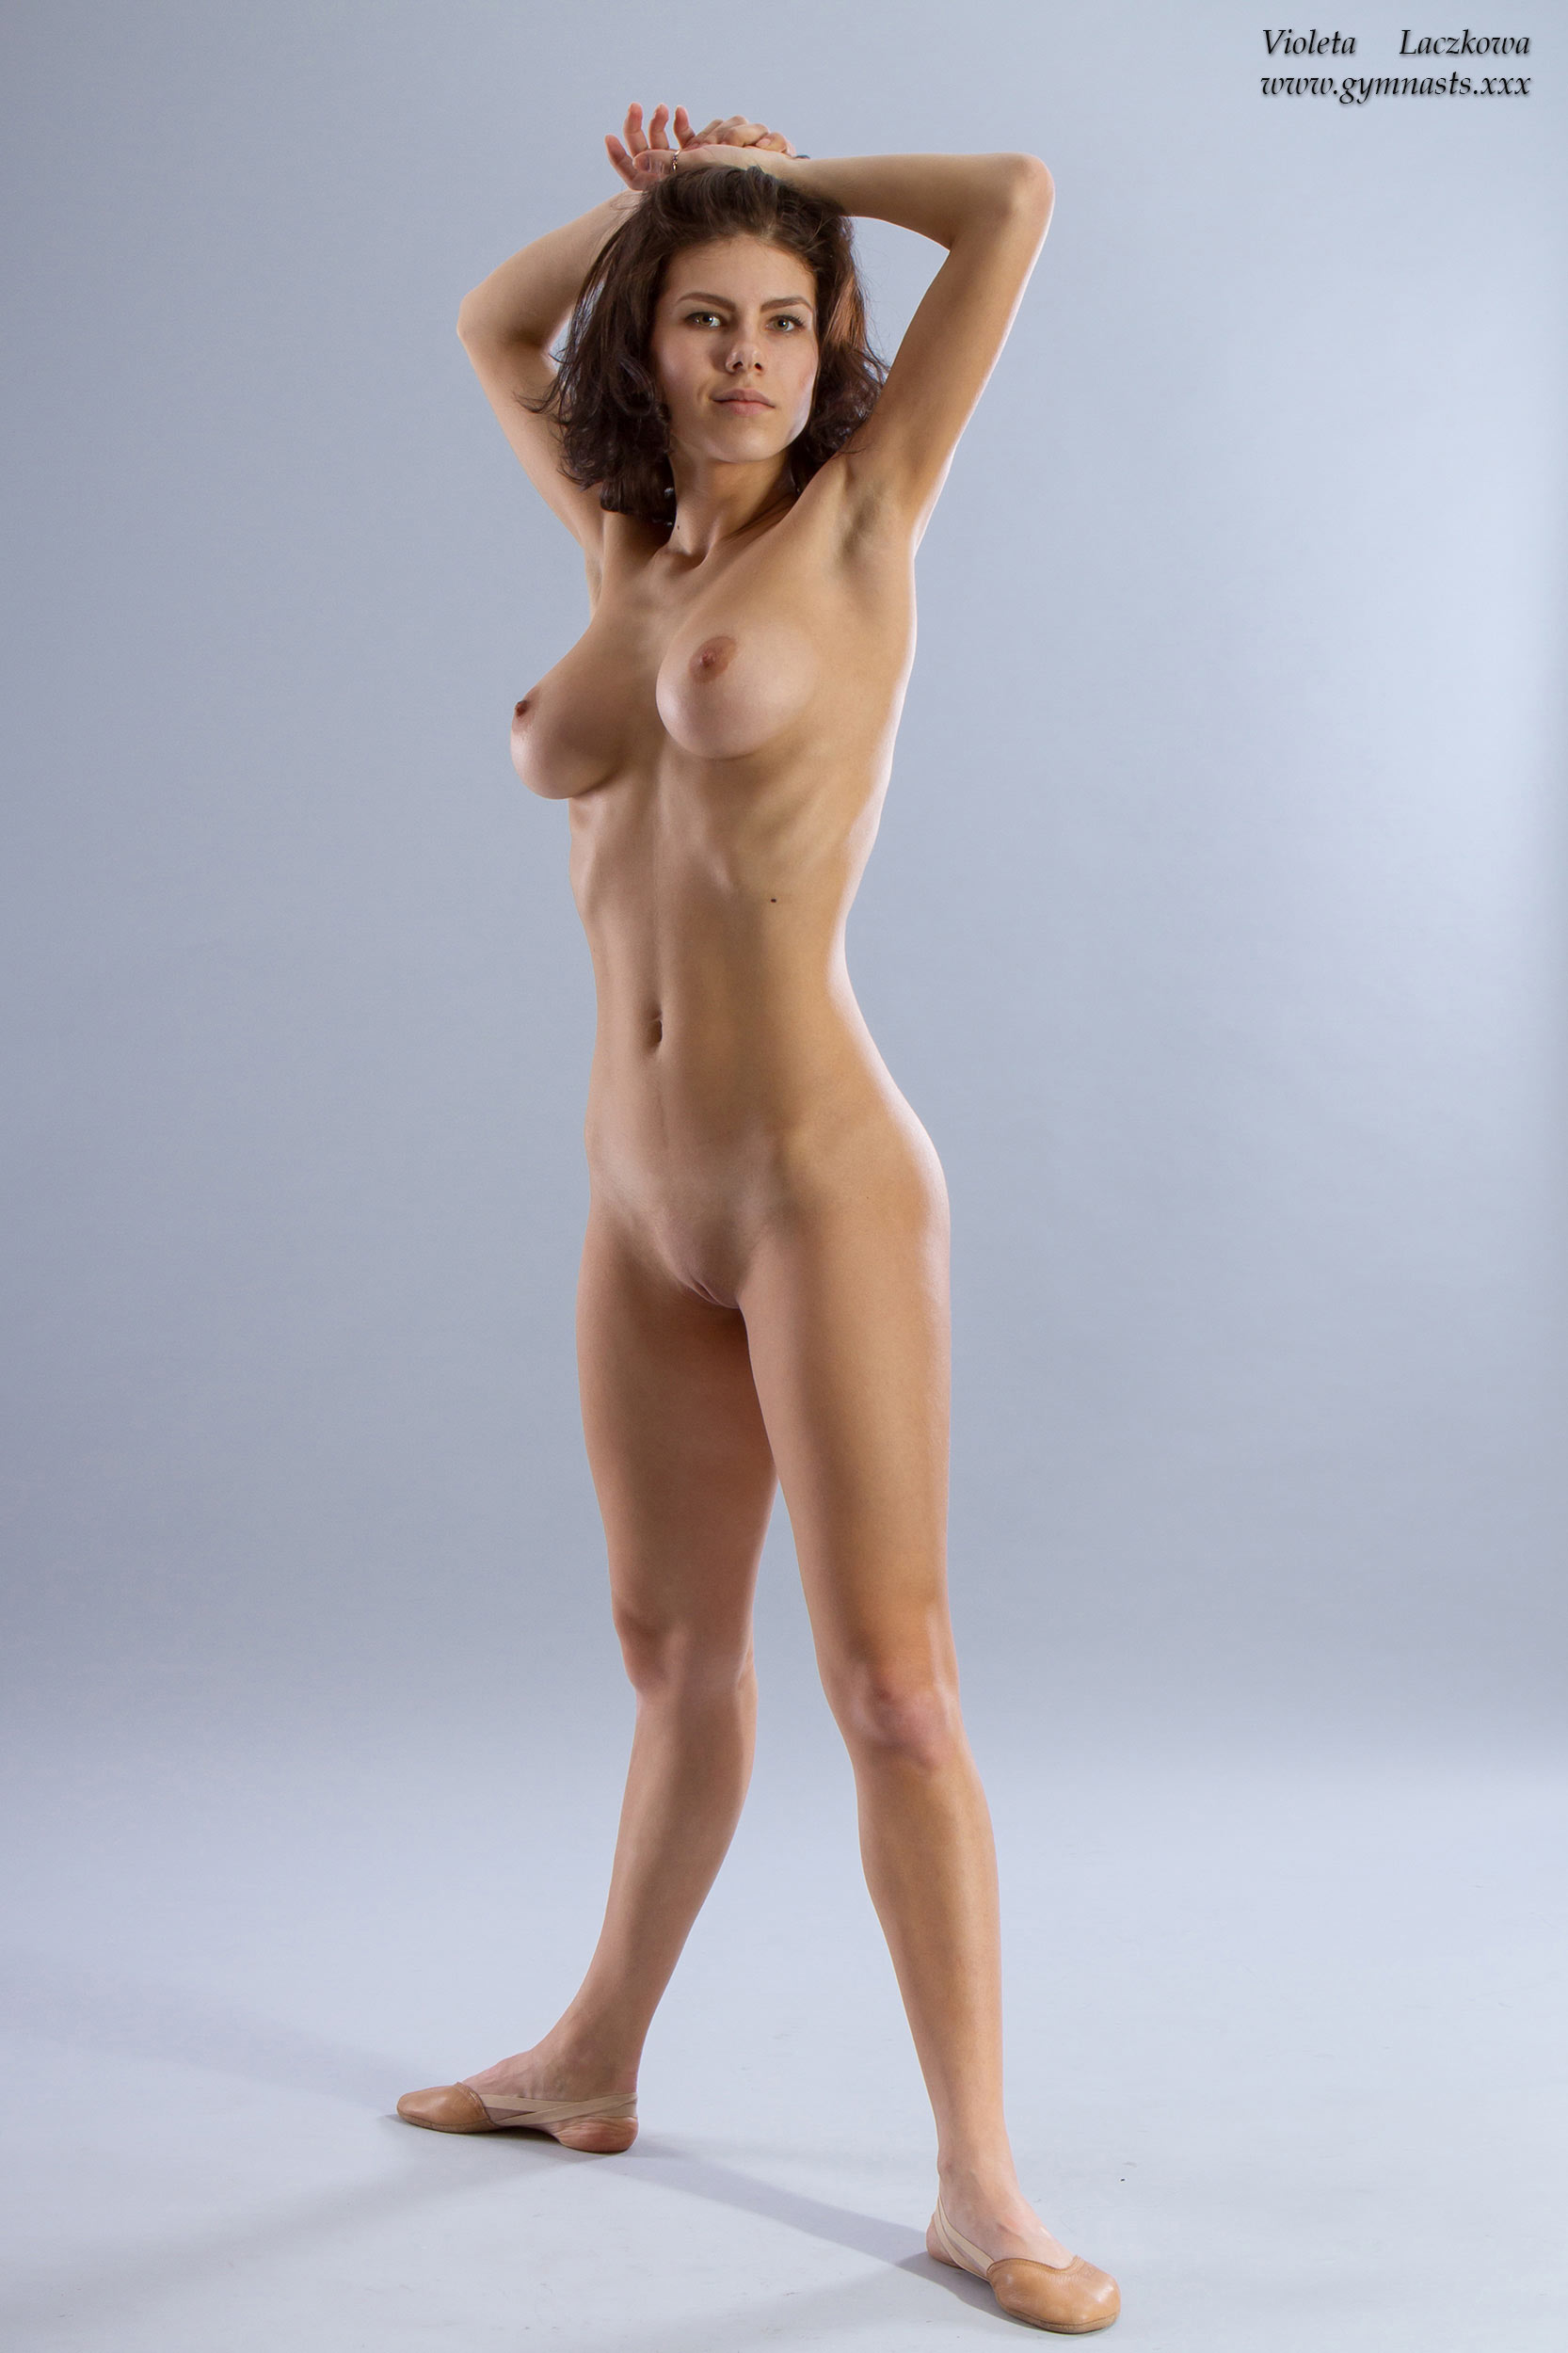 Shamita sheety naked